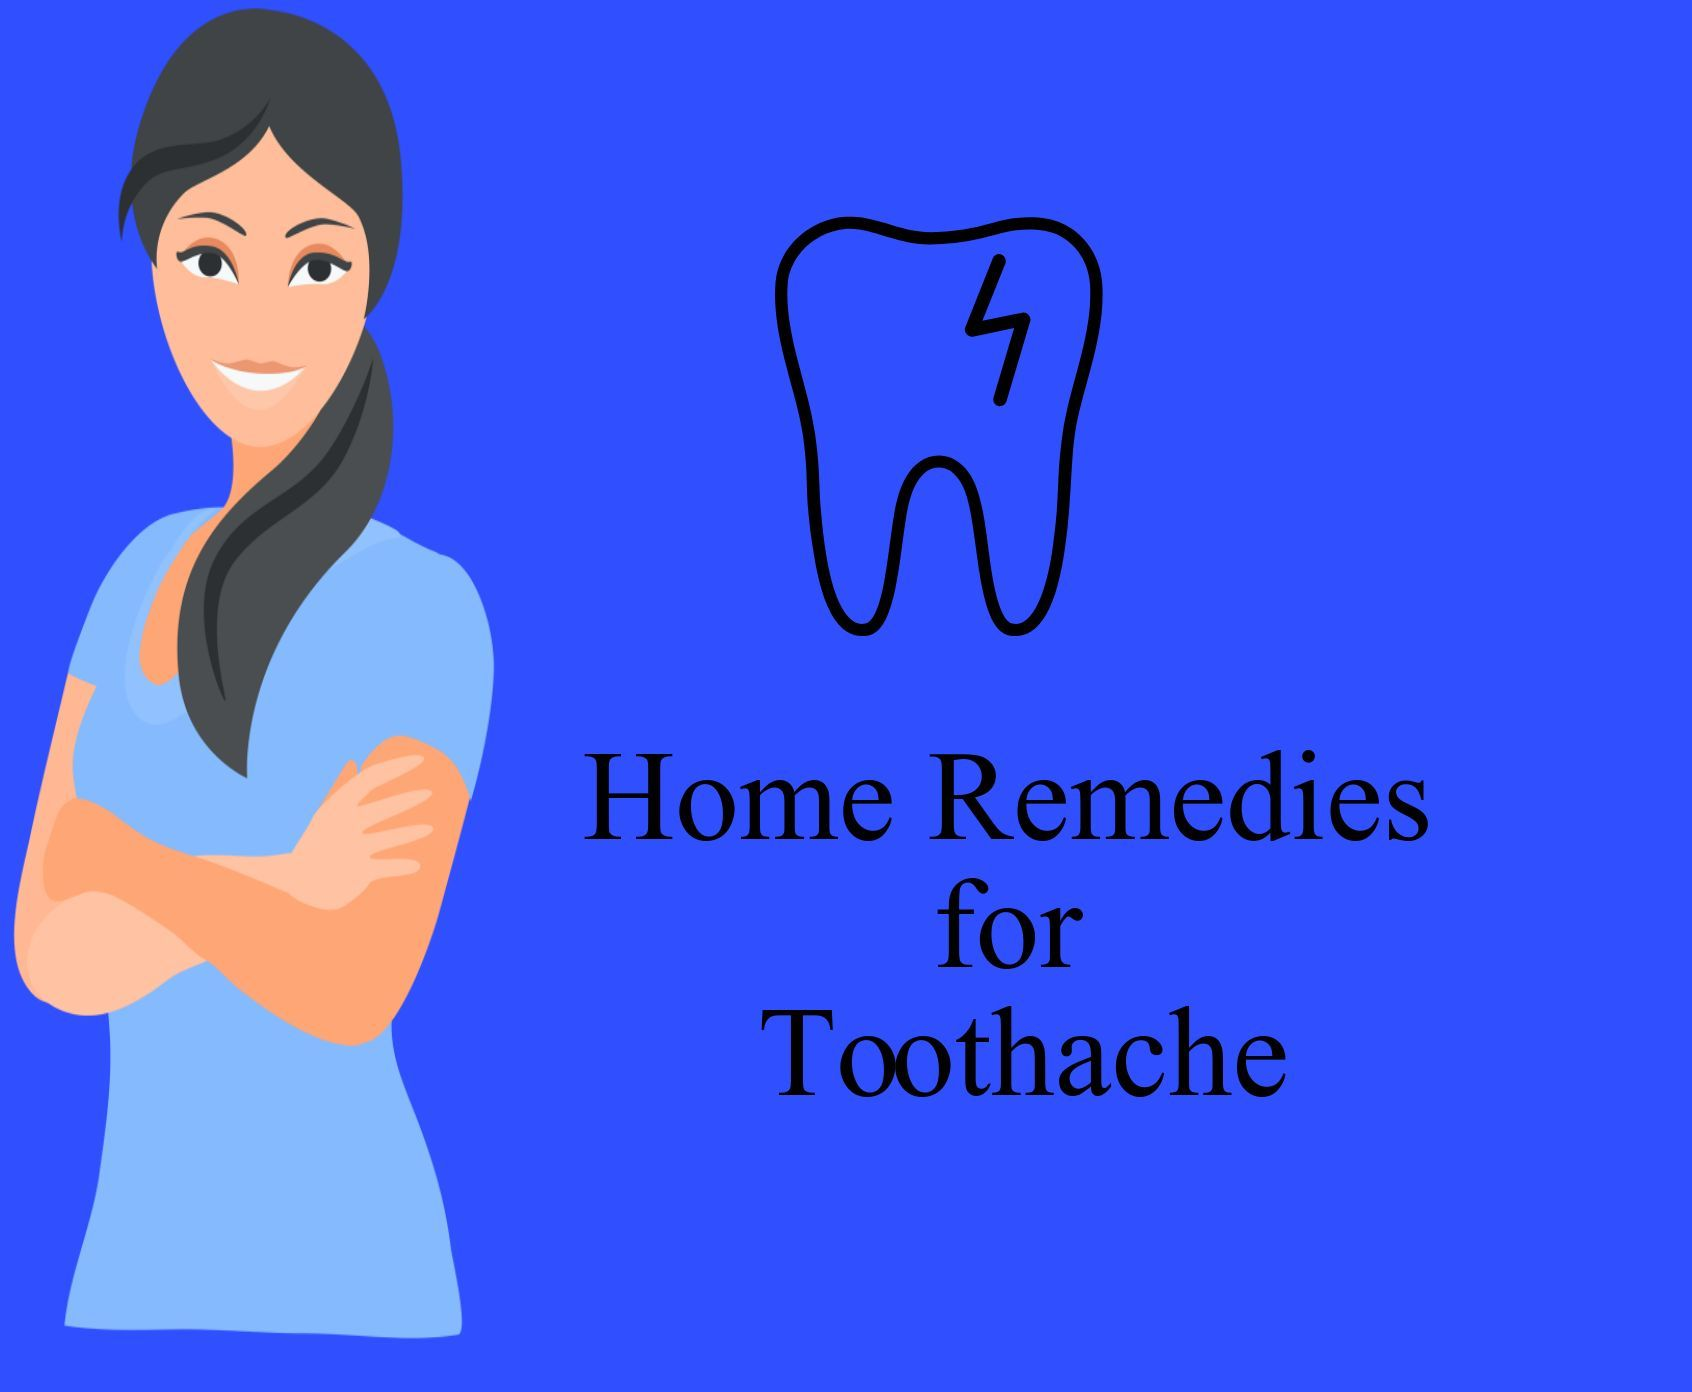 Home Remedies to cure Toothache